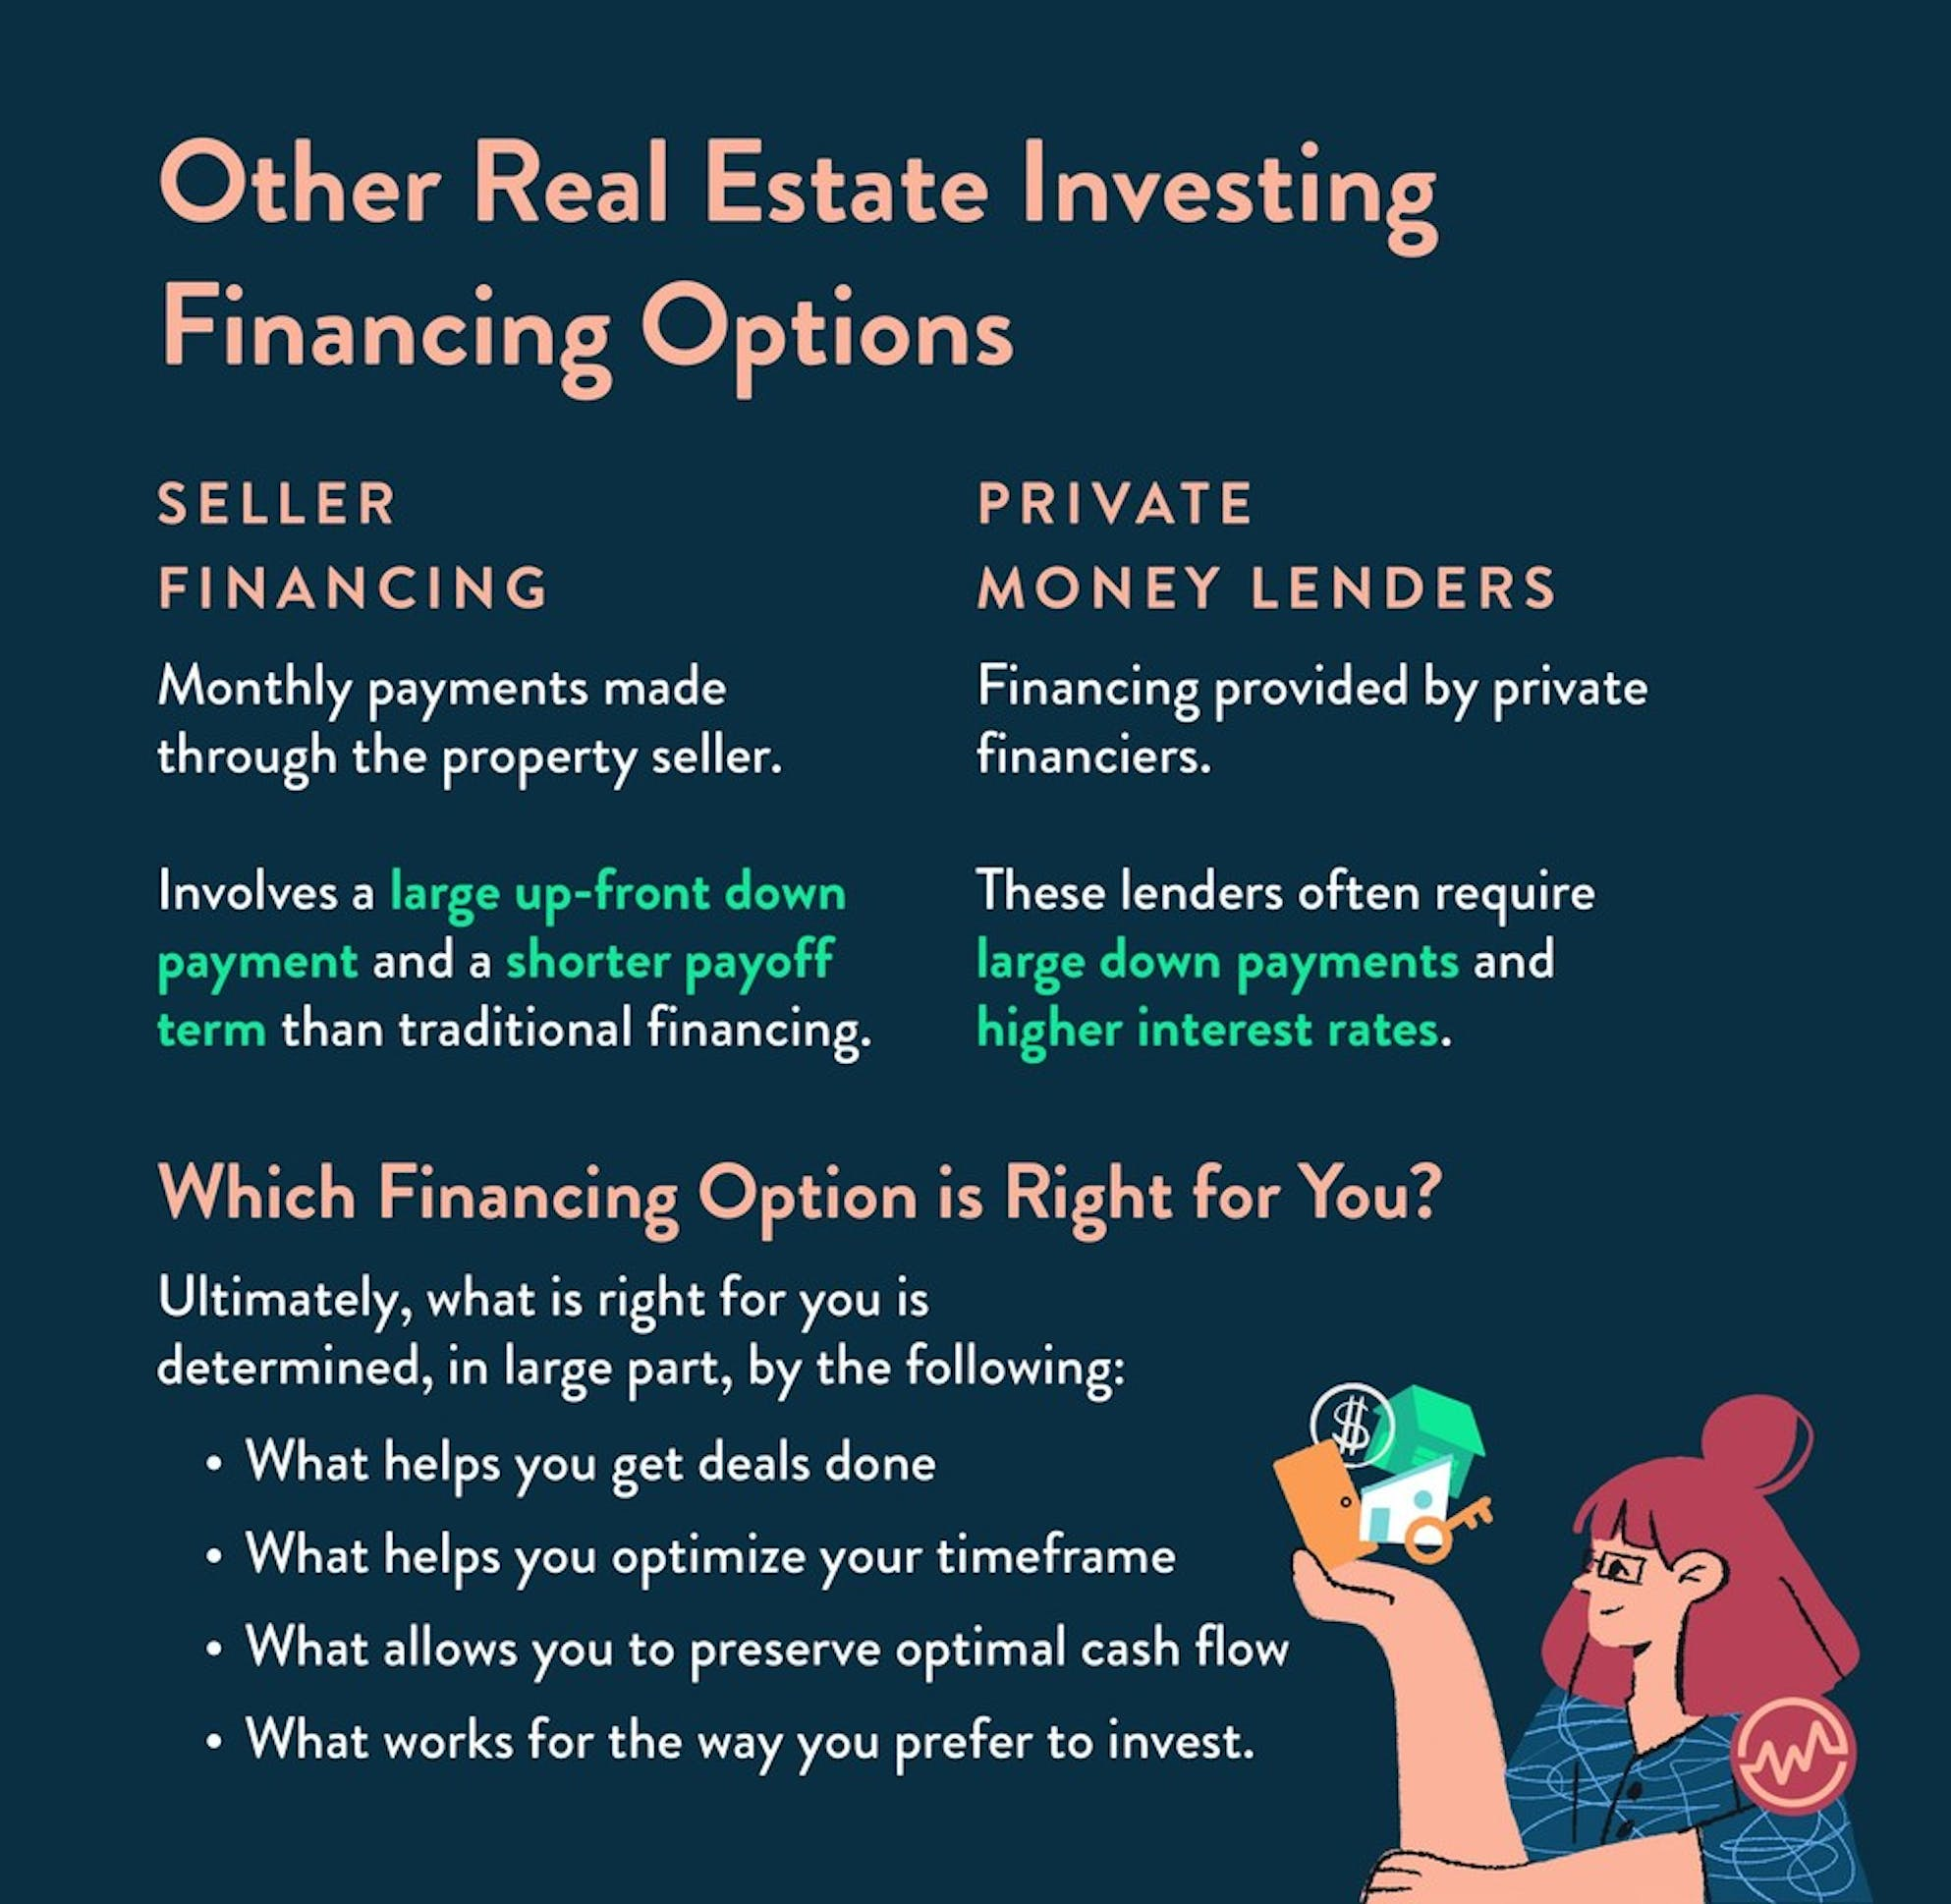 Other Real Estate Investing Financing Options